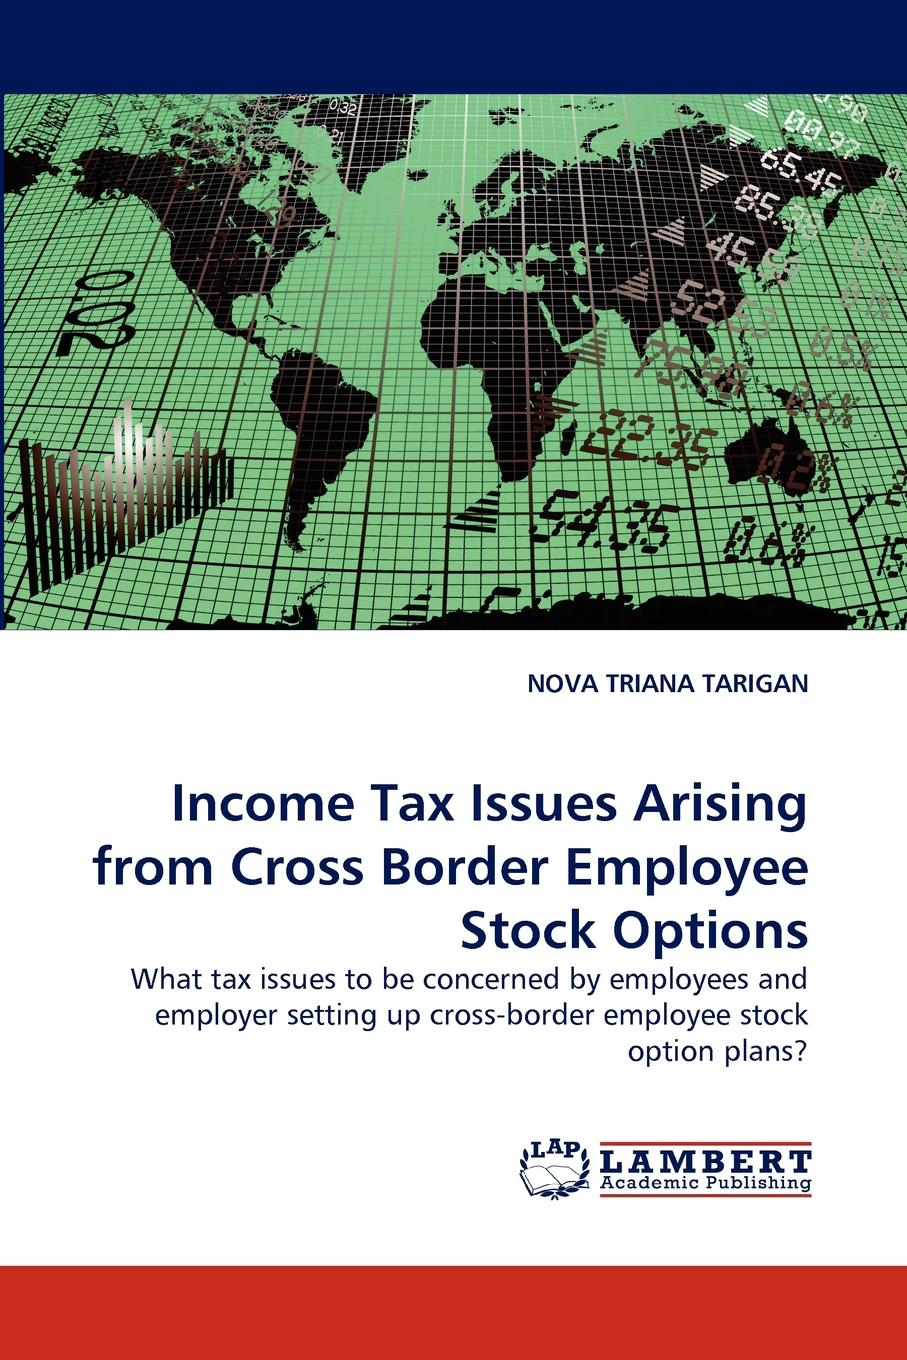 NOVA TRIANA TARIGAN Income Tax Issues Arising from Cross Border Employee Stock Options johnathan mun valuing employee stock options